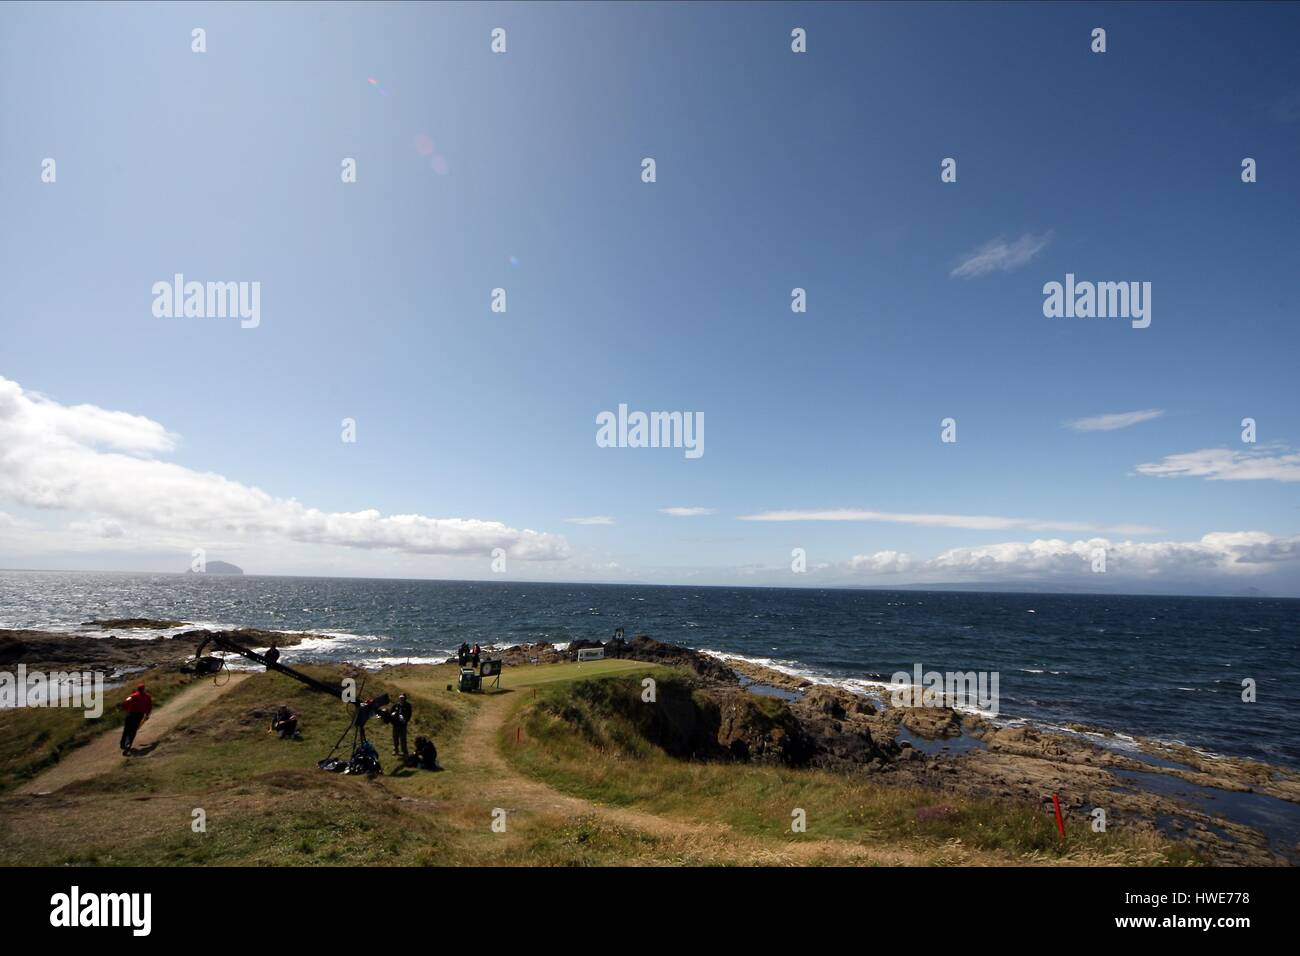 9TH TEE AT TURNBERRY TURNBERRY AYRSHIRE SCOTLAND TURNBERRY AYRSHIRE SCOTLAND 19 July 2009 - Stock Image